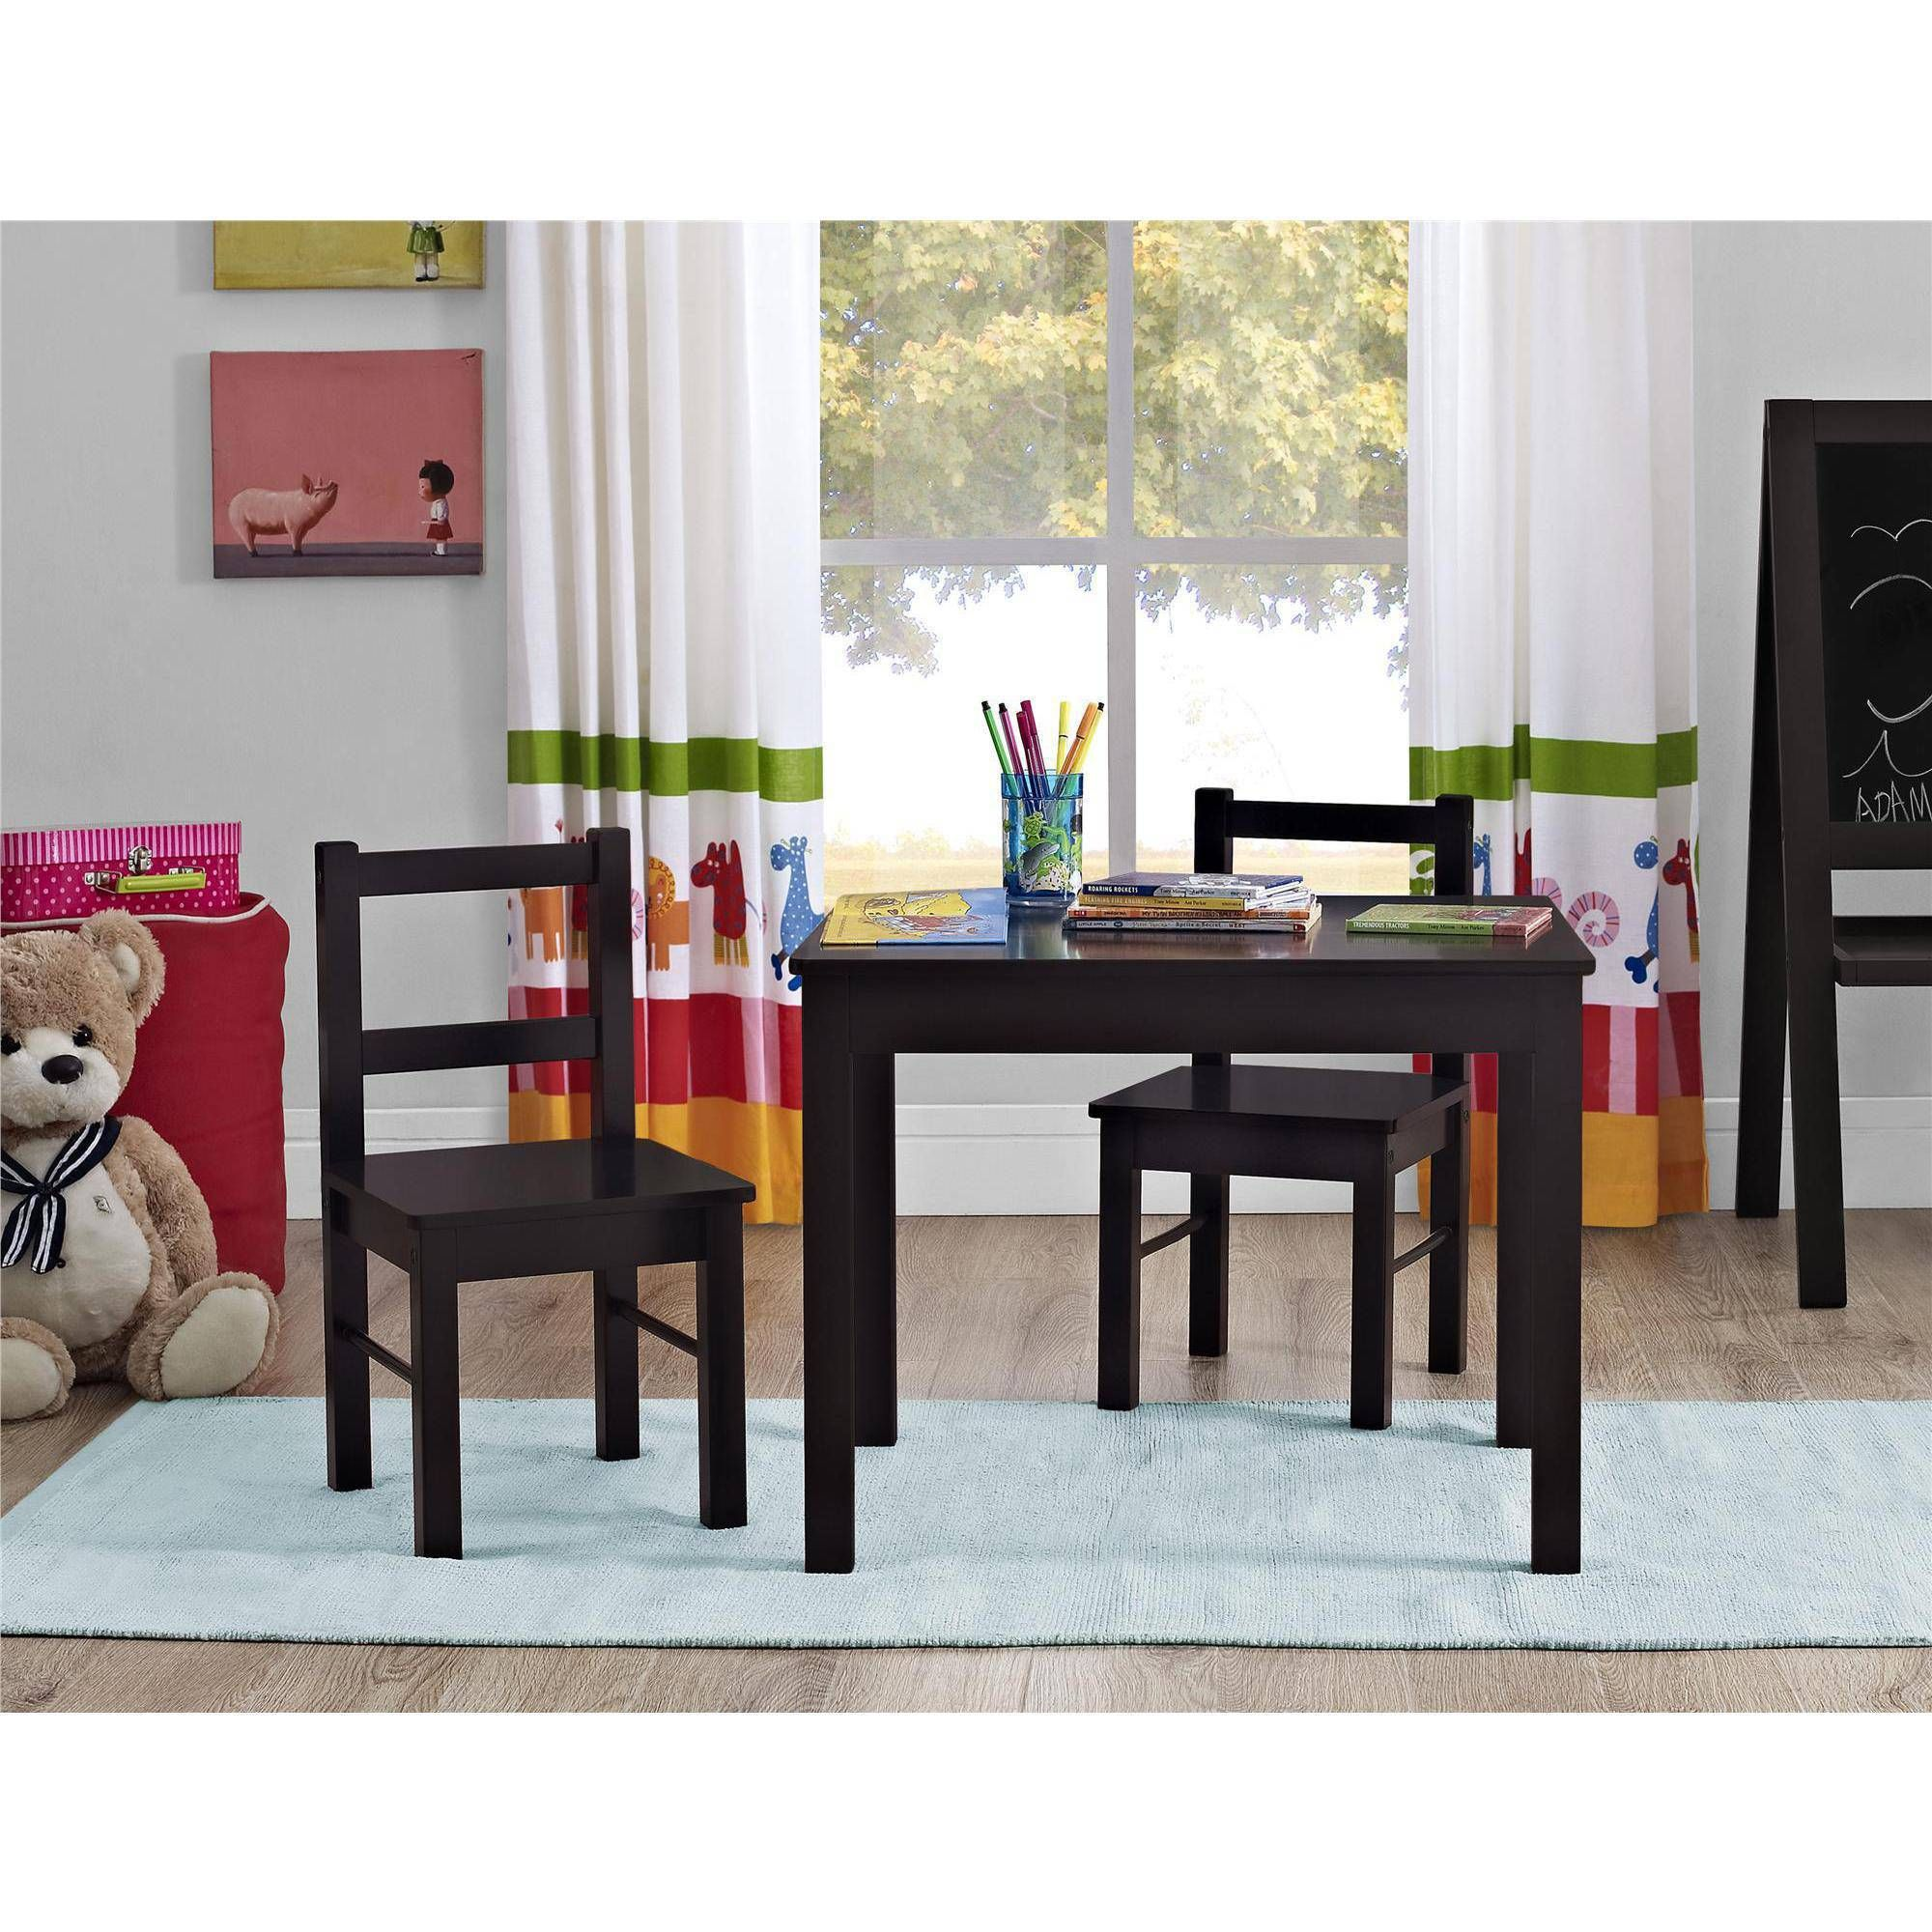 Altra Furniture Hazel Kids Table And Chairs 3Piece Set Espresso Delectable Bargain Dining Room Sets Design Decoration